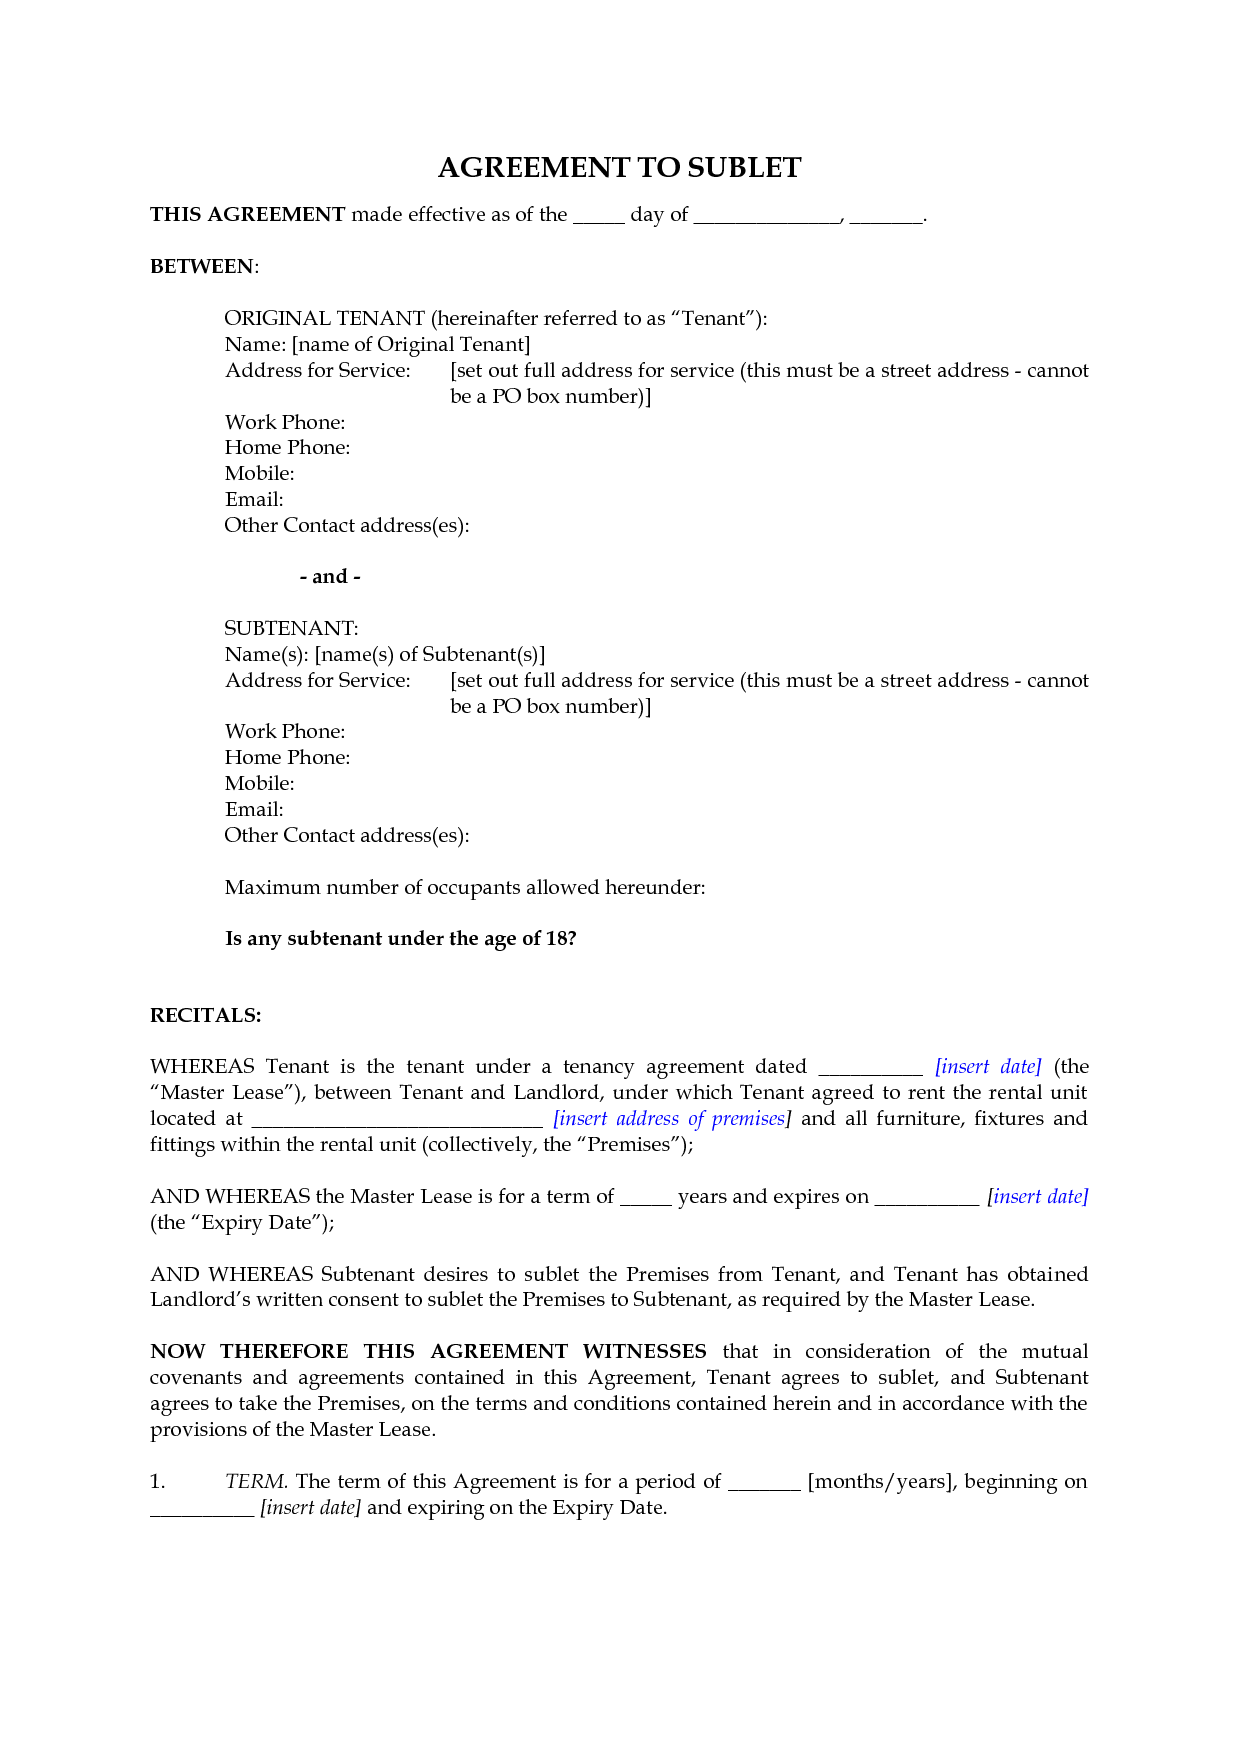 New Zealand Subletting Agreement For Residential Premises By Megadox -  Subletting Contract Template